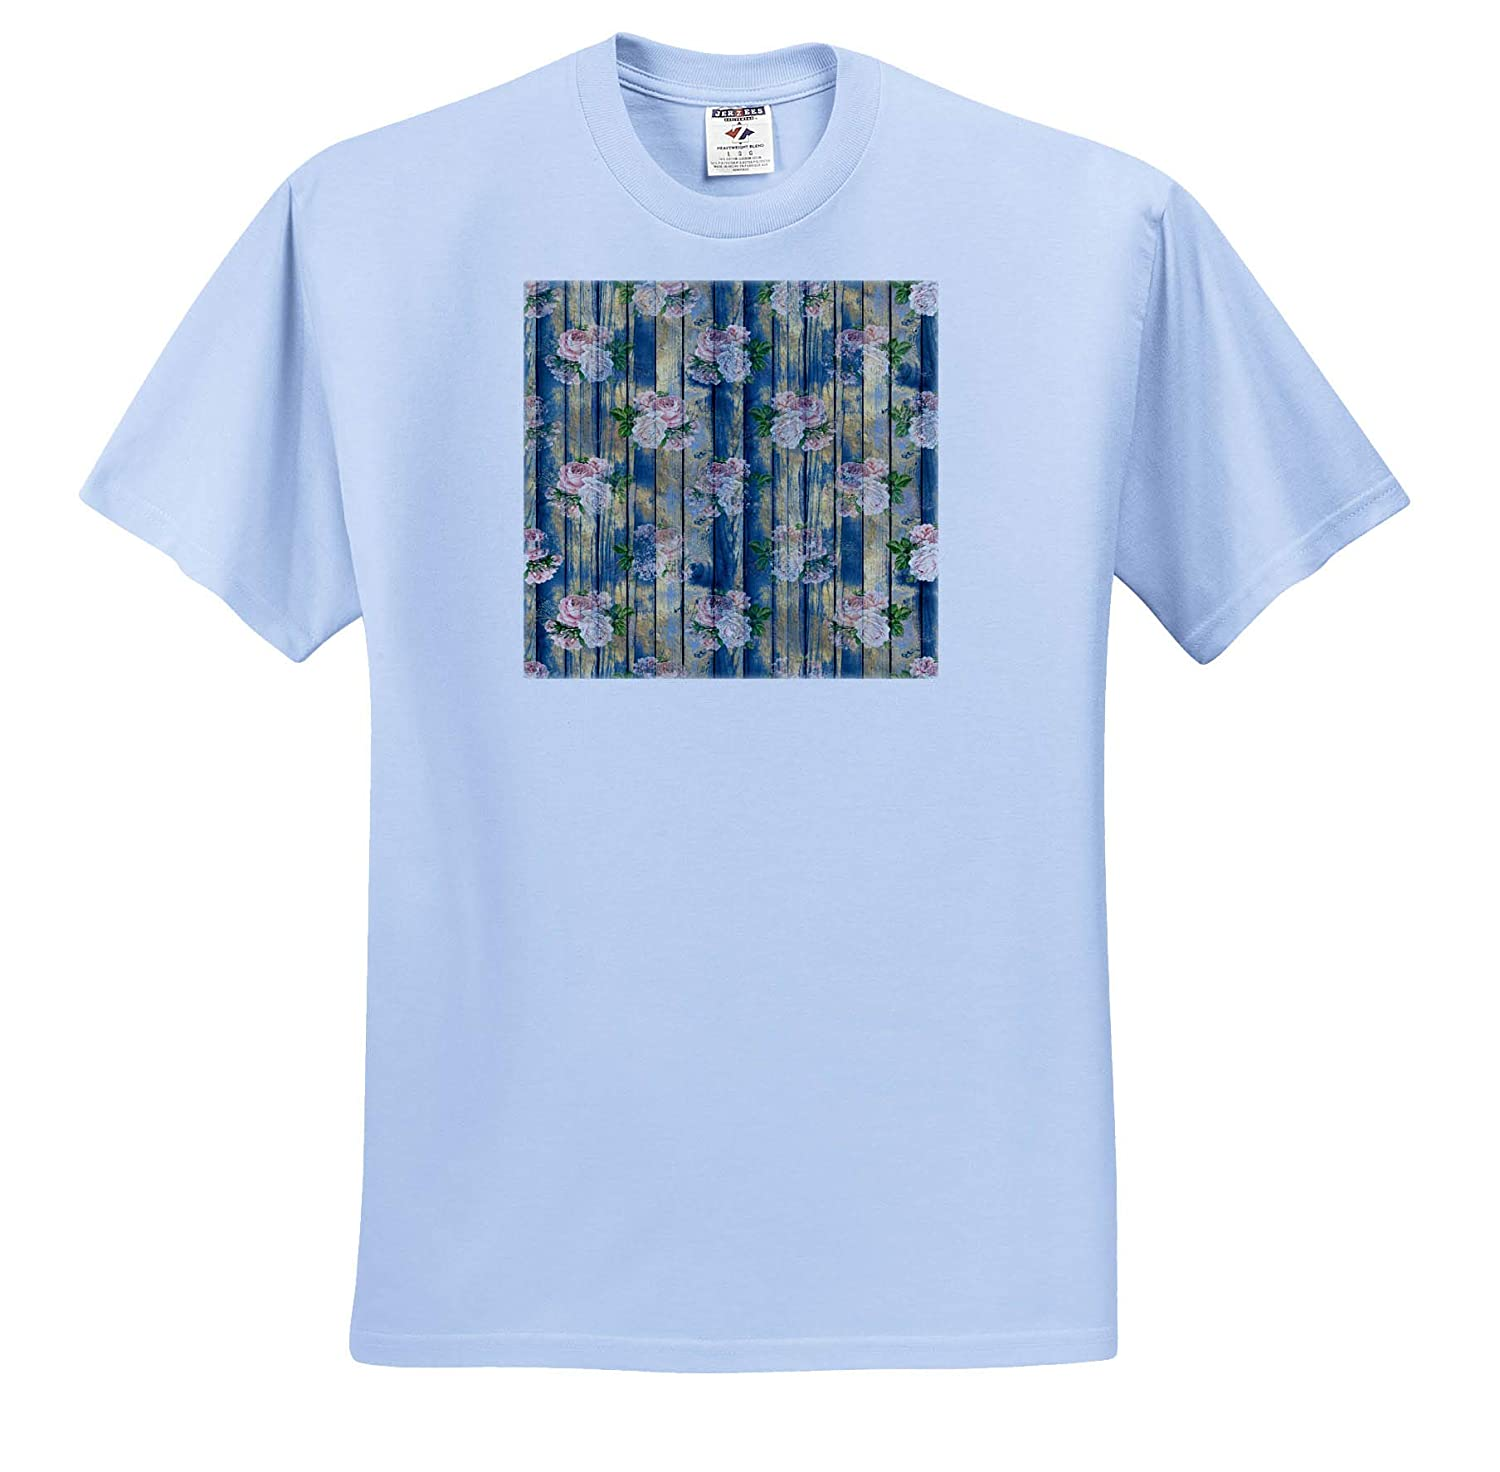 3dRose Anne Marie Baugh Pretty Pink Roses On an Image of Blue Wood Pattern Patterns Adult T-Shirt XL ts/_317602